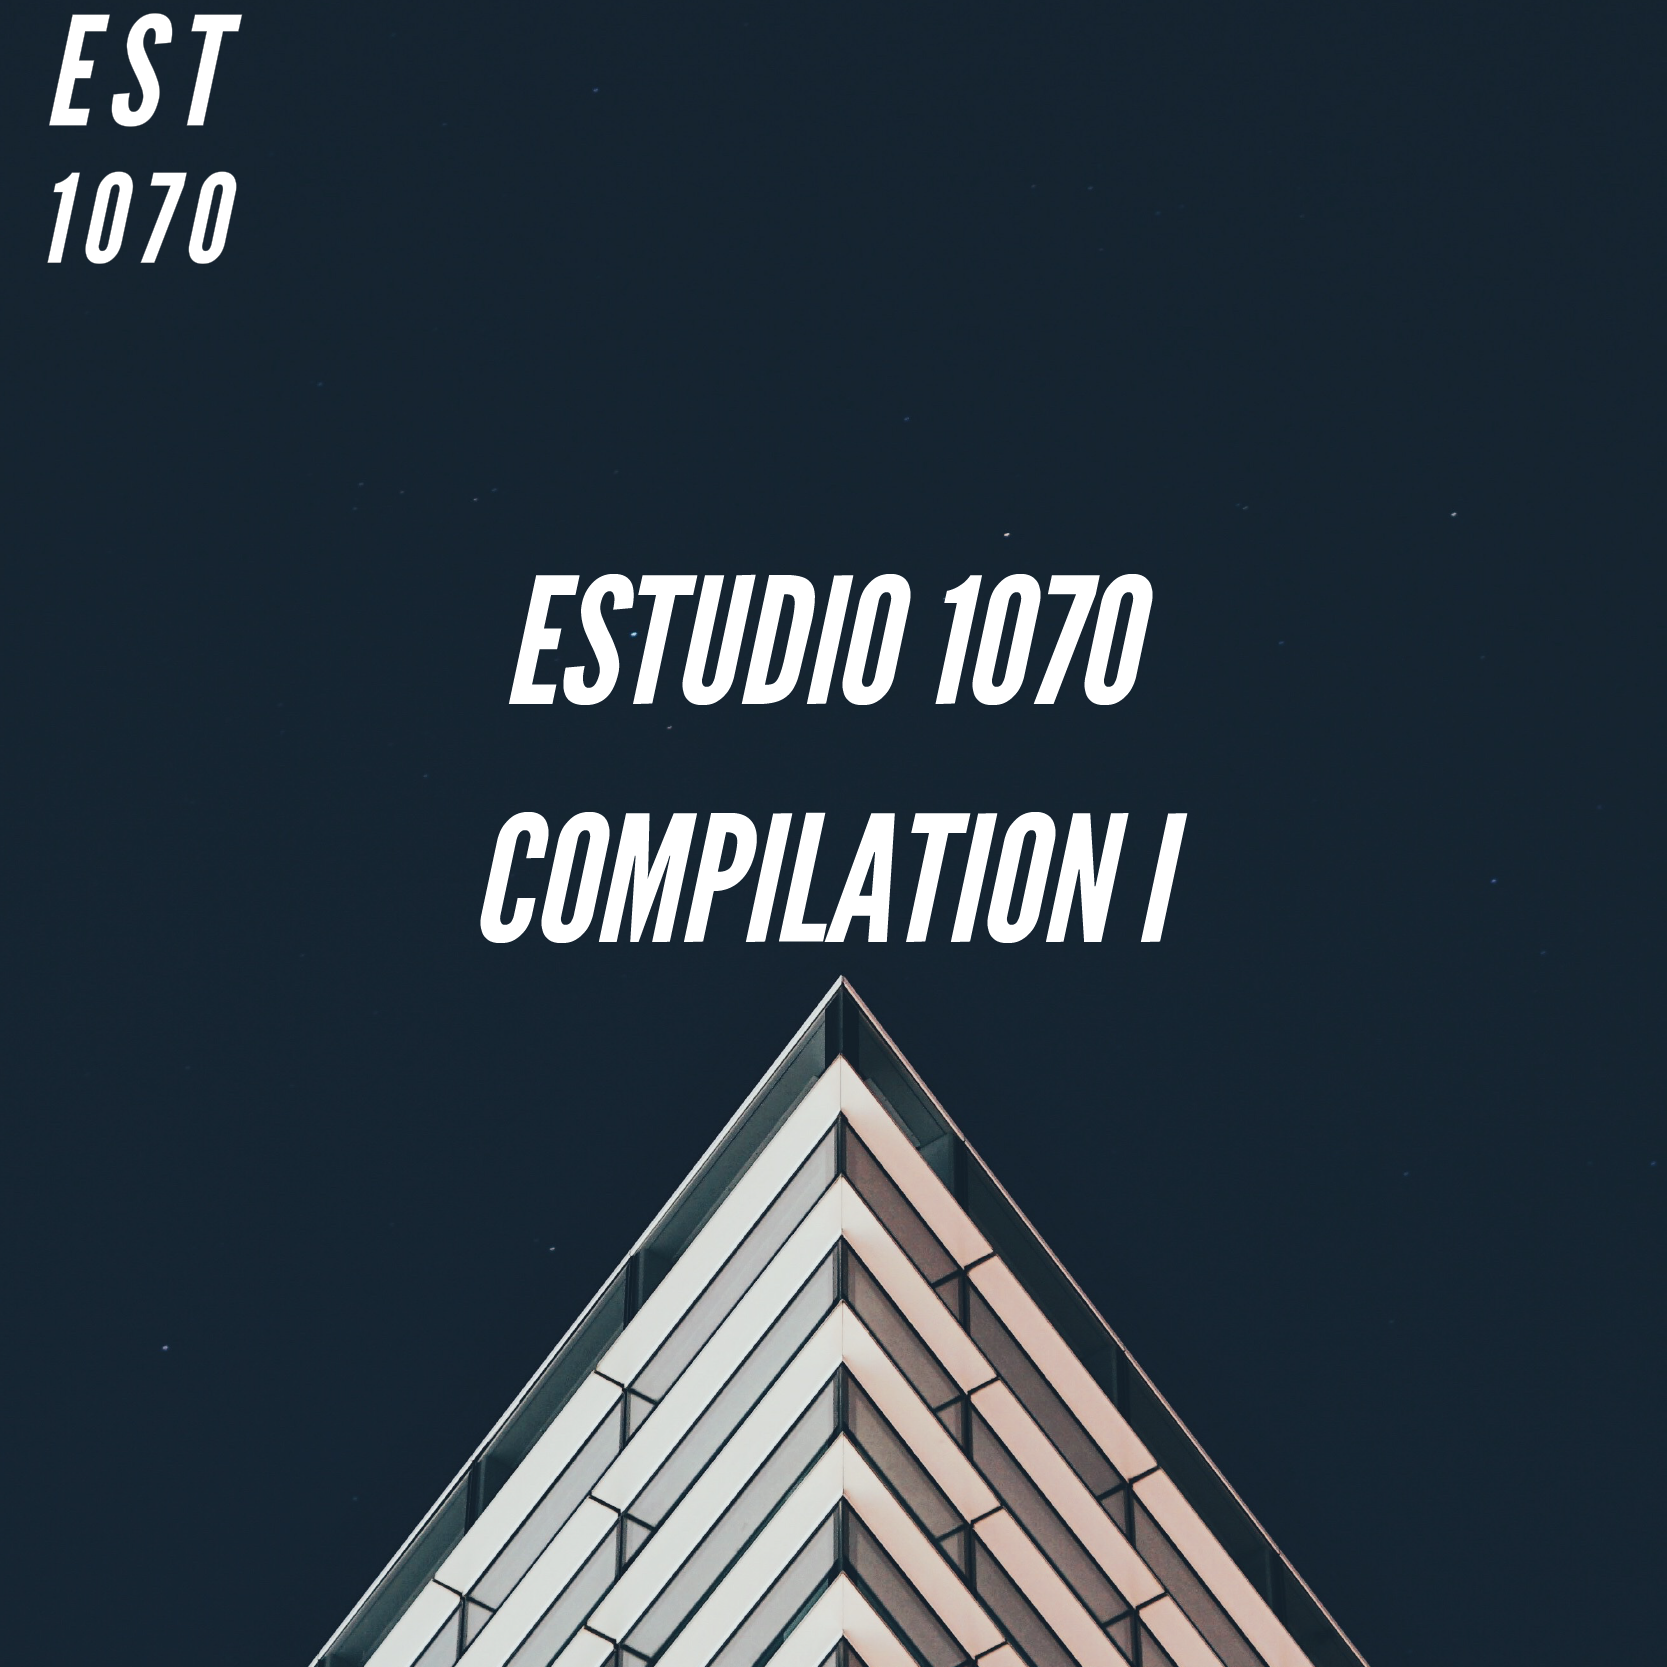 Various Artists - Estudio 1070 Compilation I   A curated list of artists that has pass thru the Estudio 1070 and collaborate to create a compilation where theres no genere in common but a goal that is put latin music in a new perspective .